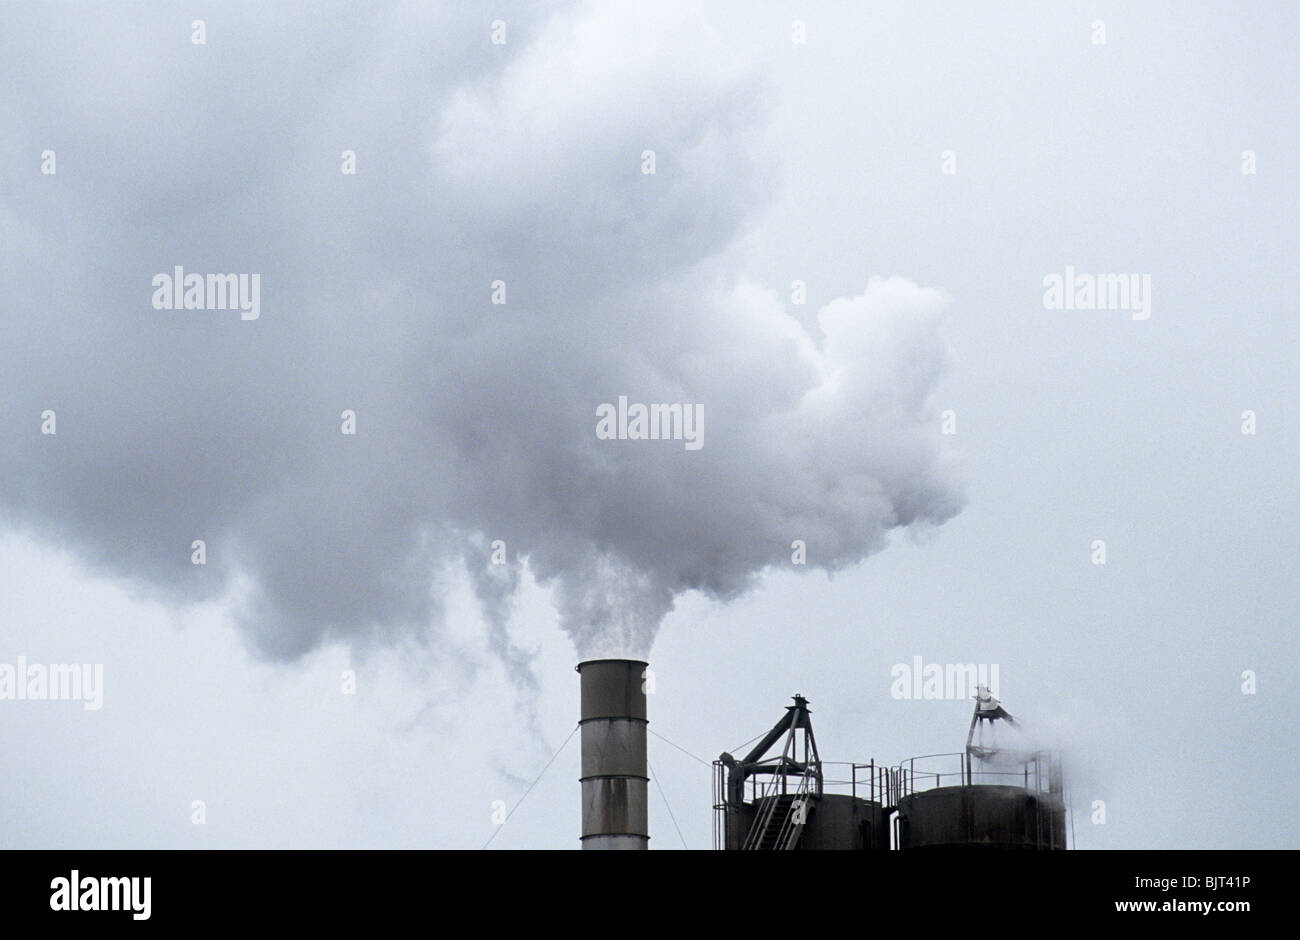 Smoke coming out of a chimney - Stock Image